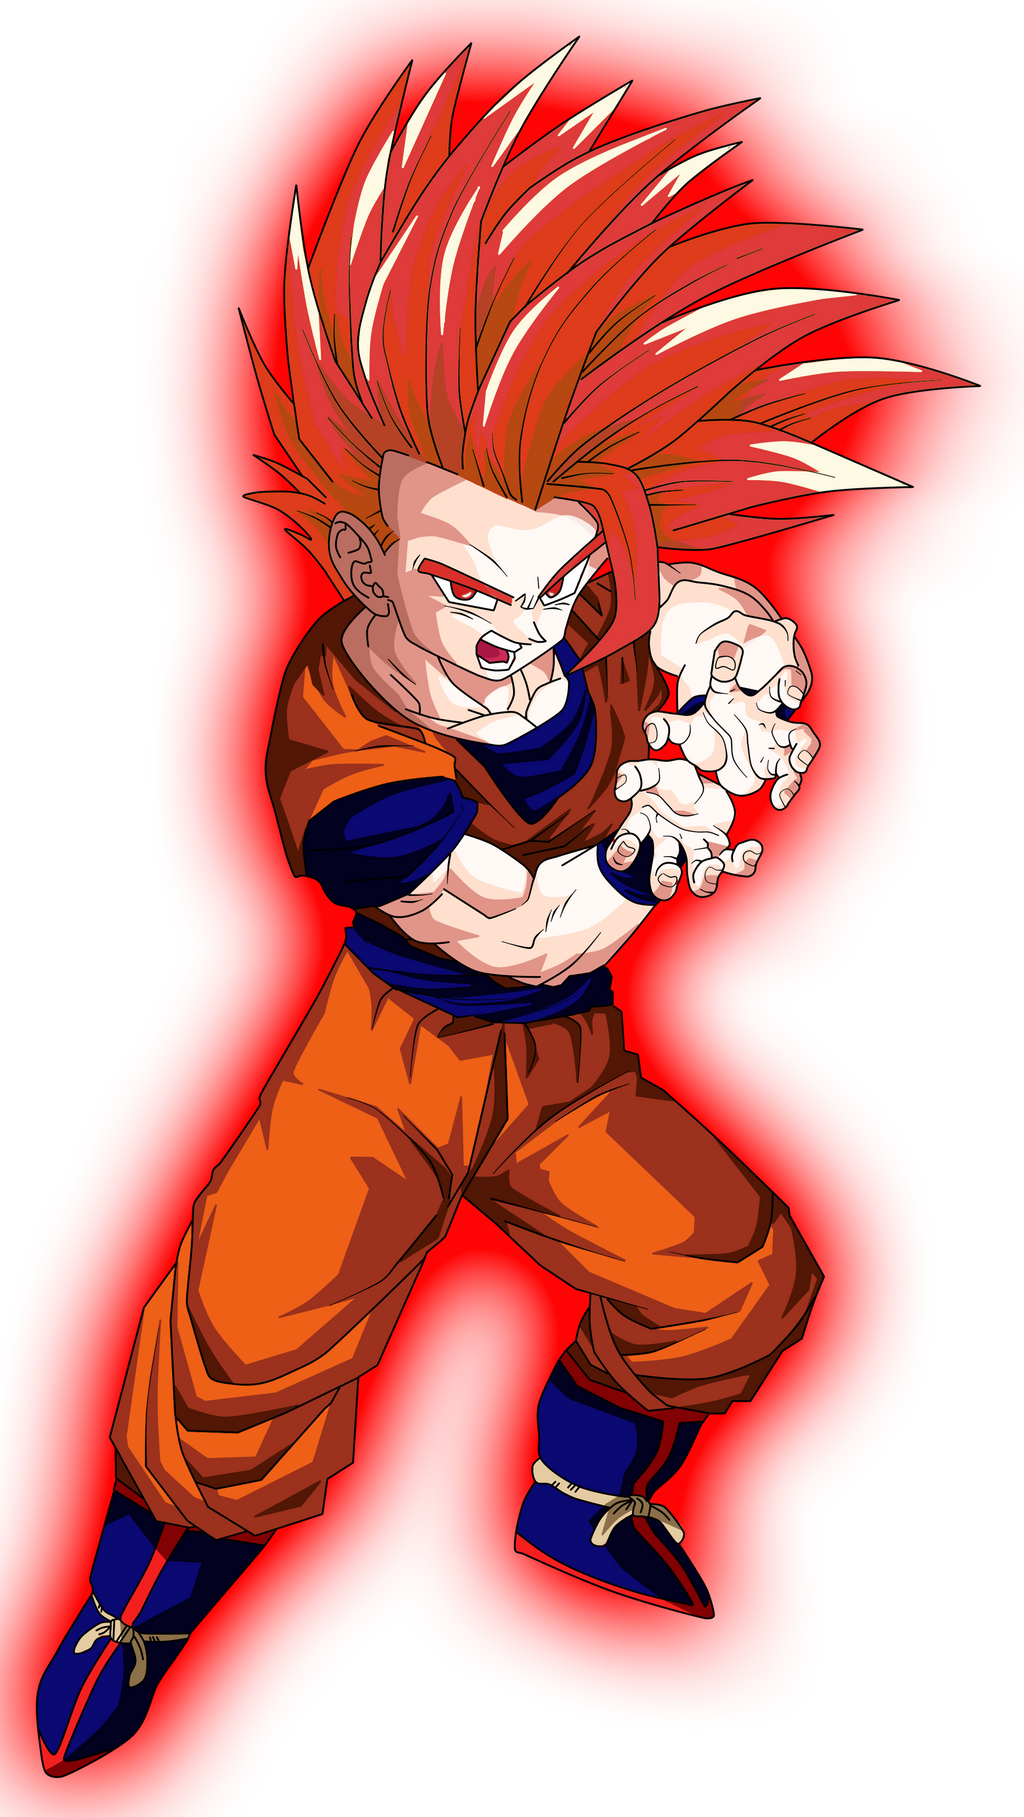 Super Saiyan God Teen Gohan by CardMaster101 on DeviantArt